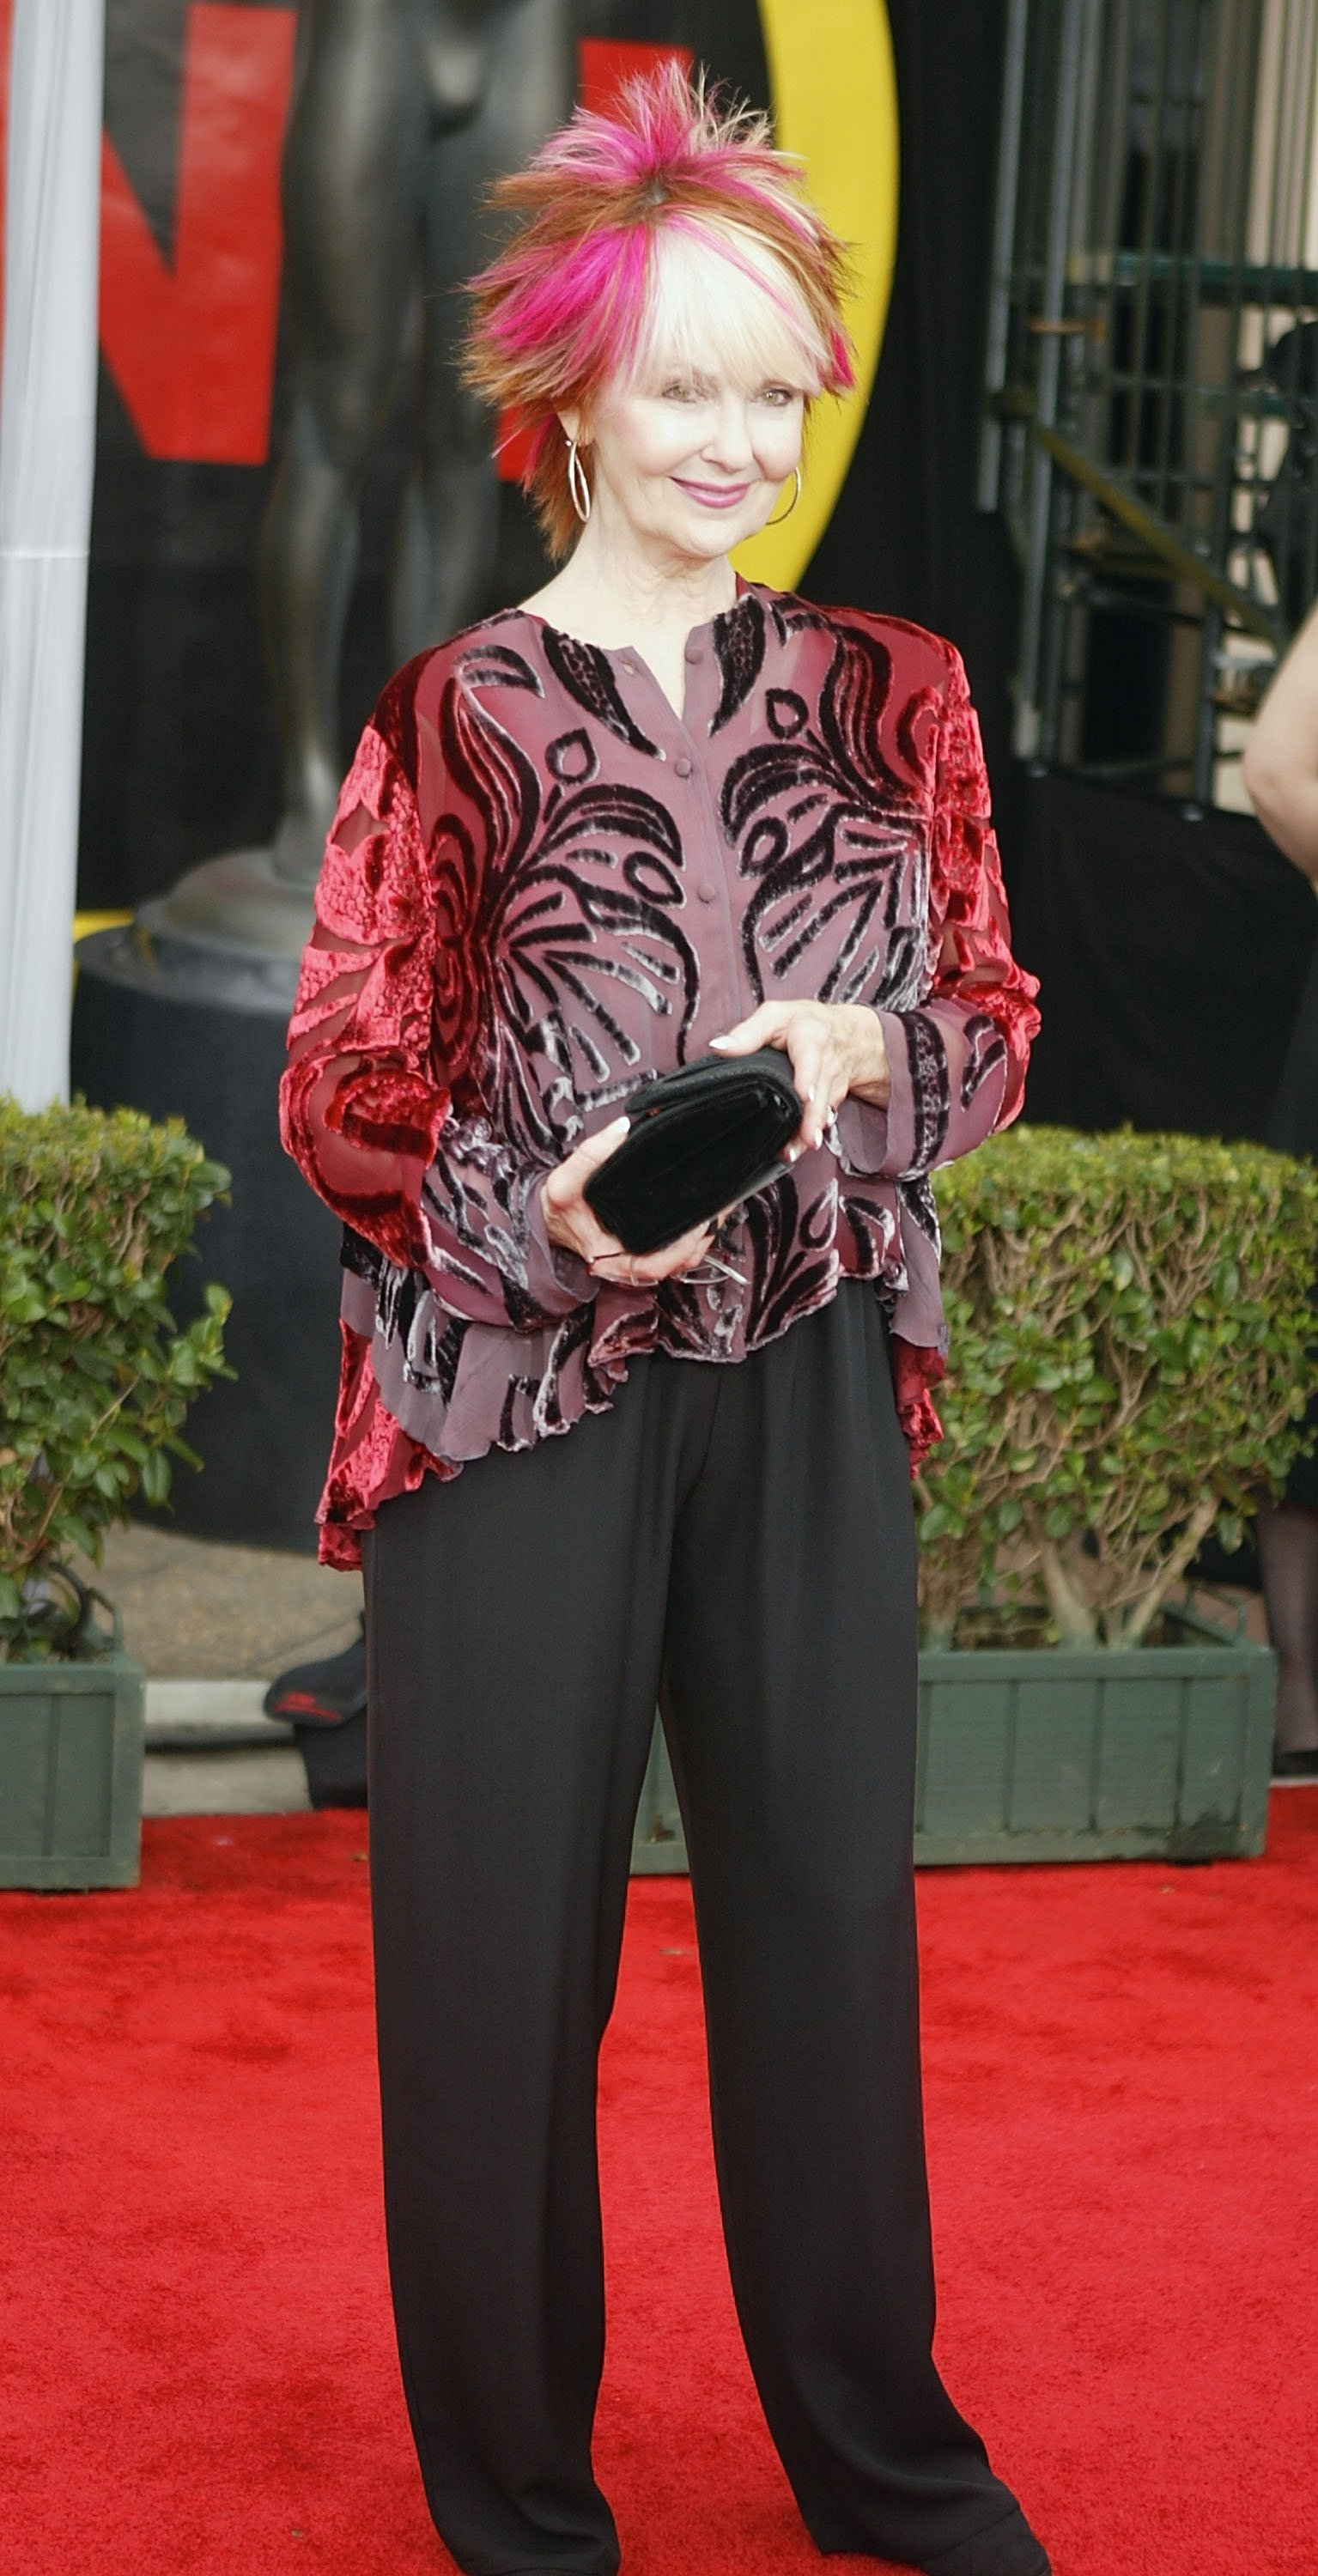 Actress Shelley Fabares on February 22, 2004, in Los Angeles, California. | Getty Images.